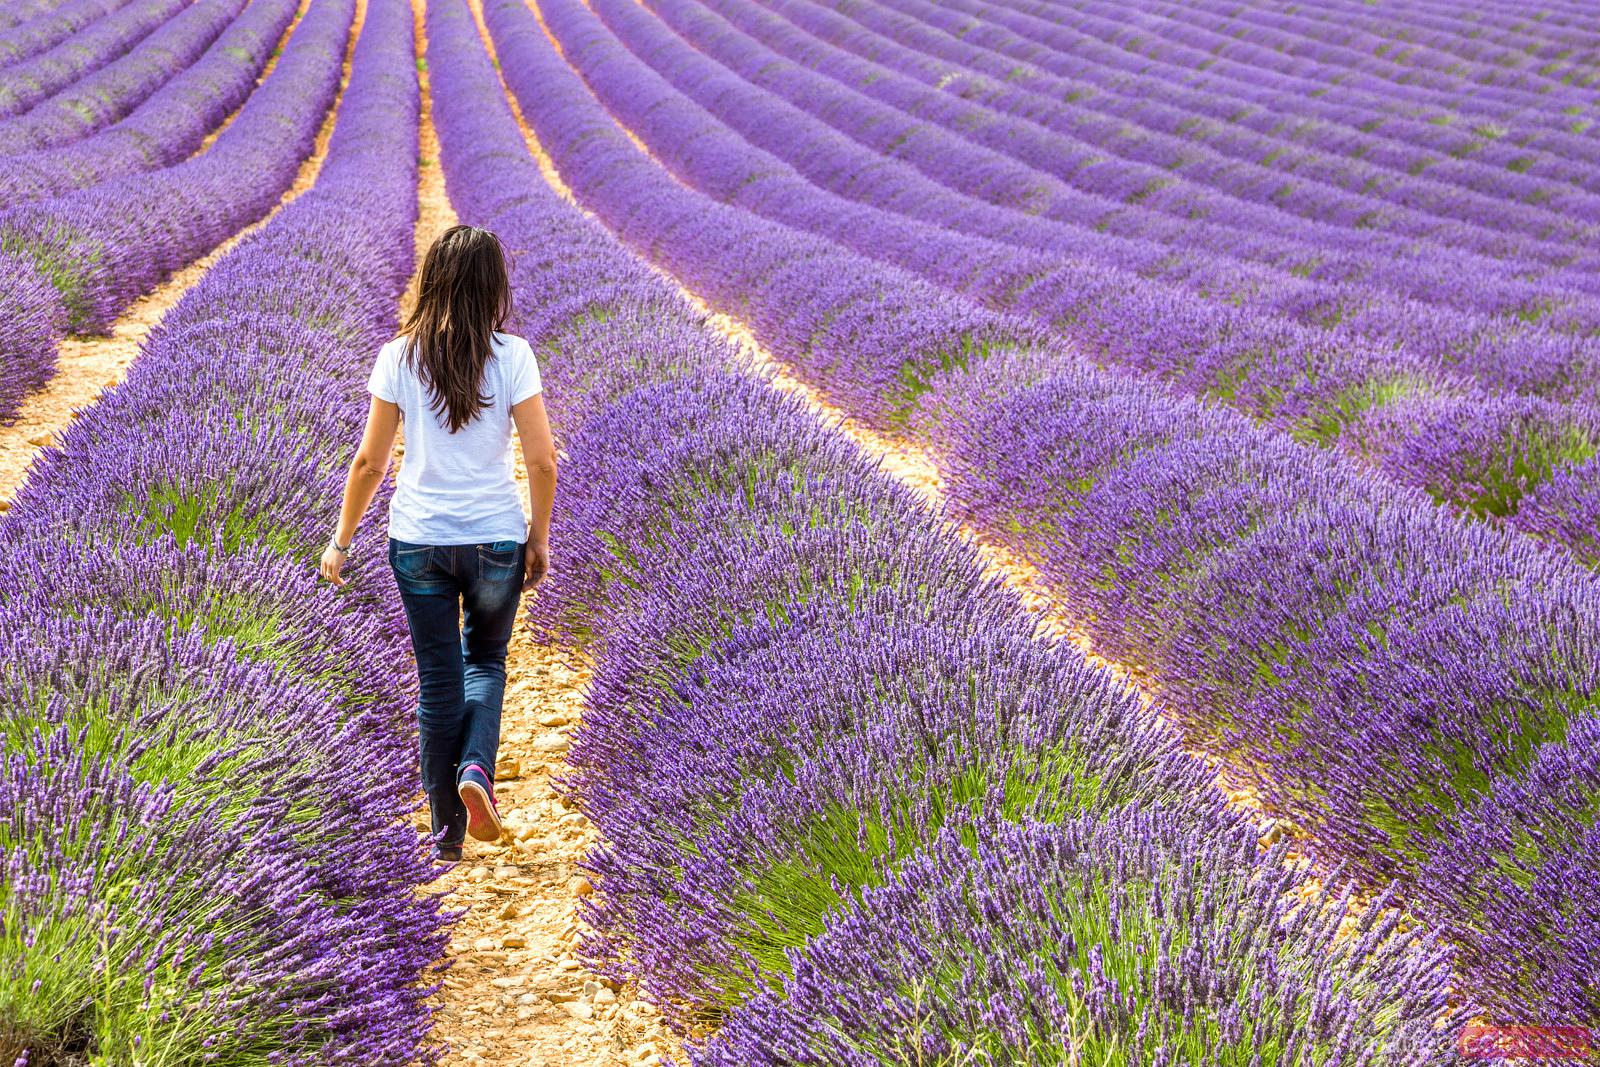 Tourist walking in lavender field in summer, Provence, France